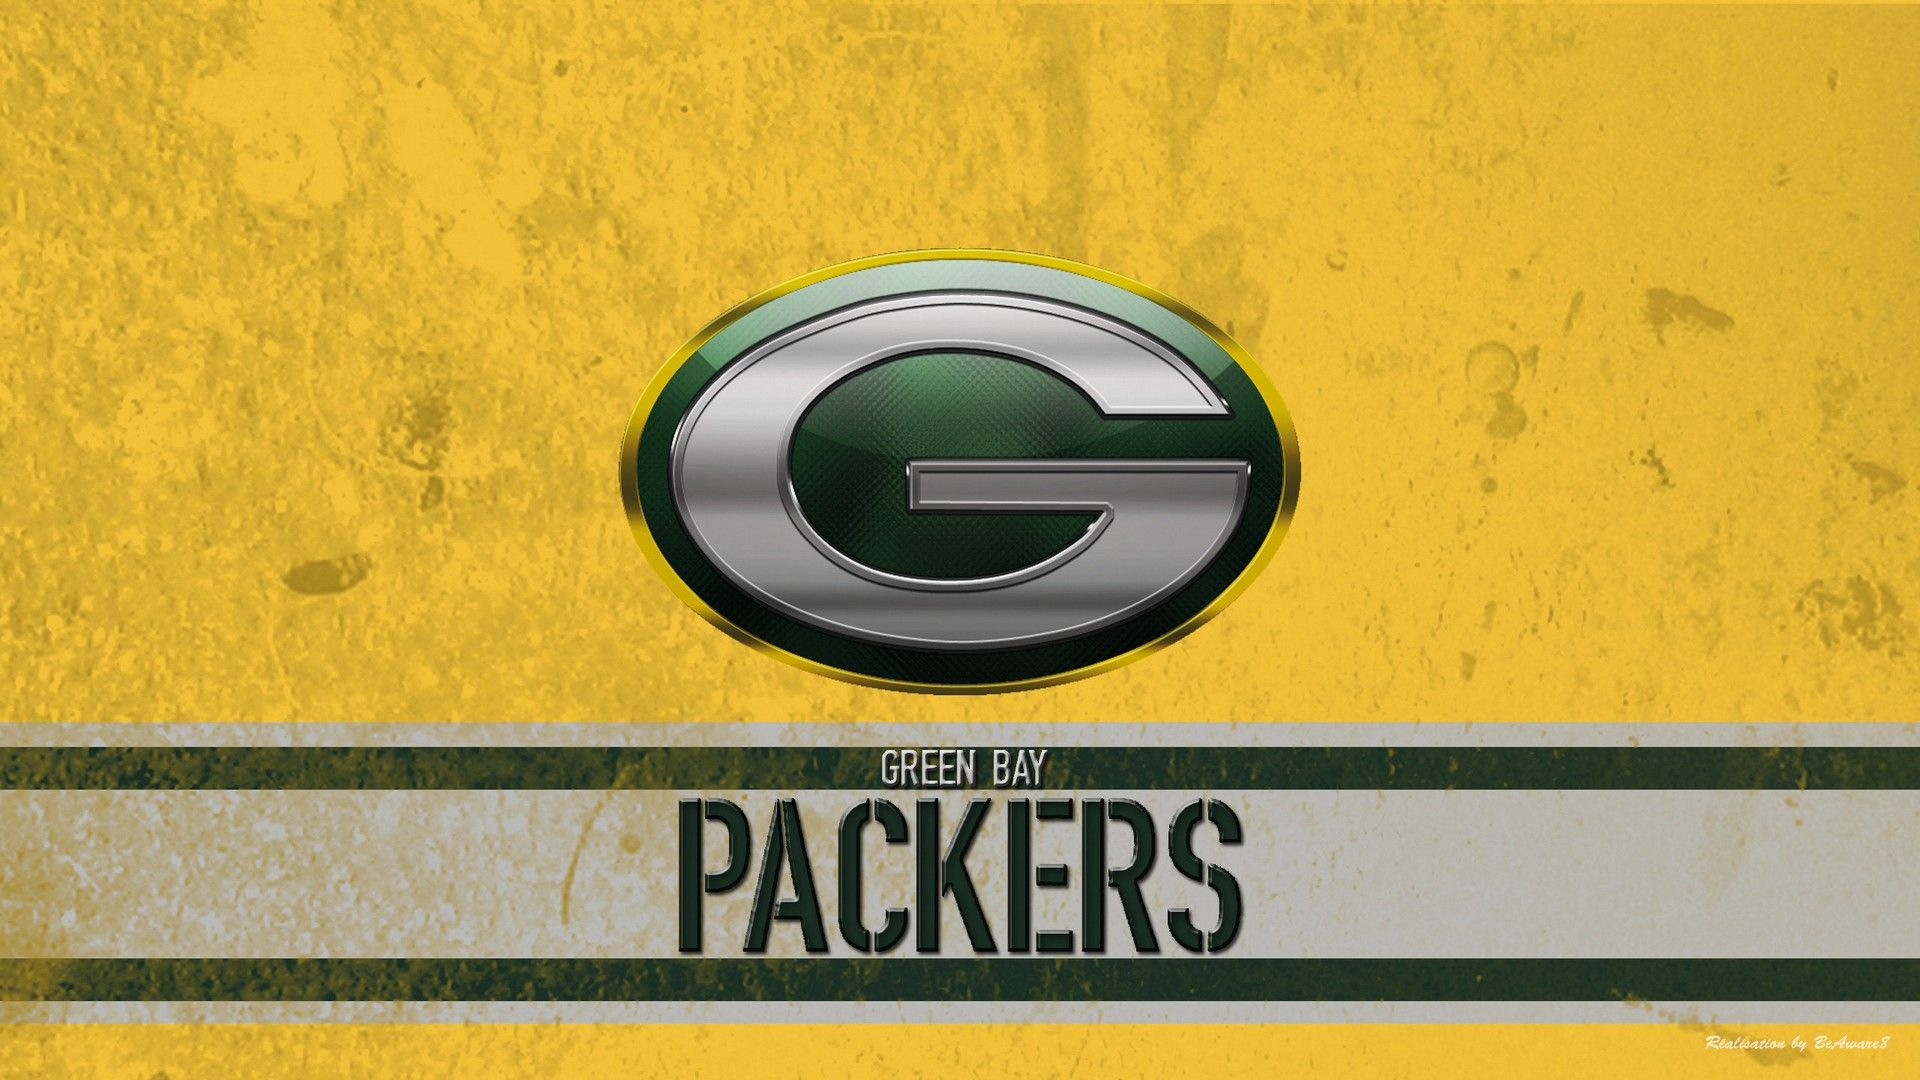 Nfl Wallpapers Green Bay Packers Wallpaper Green Bay Packers Green Bay Packers Art